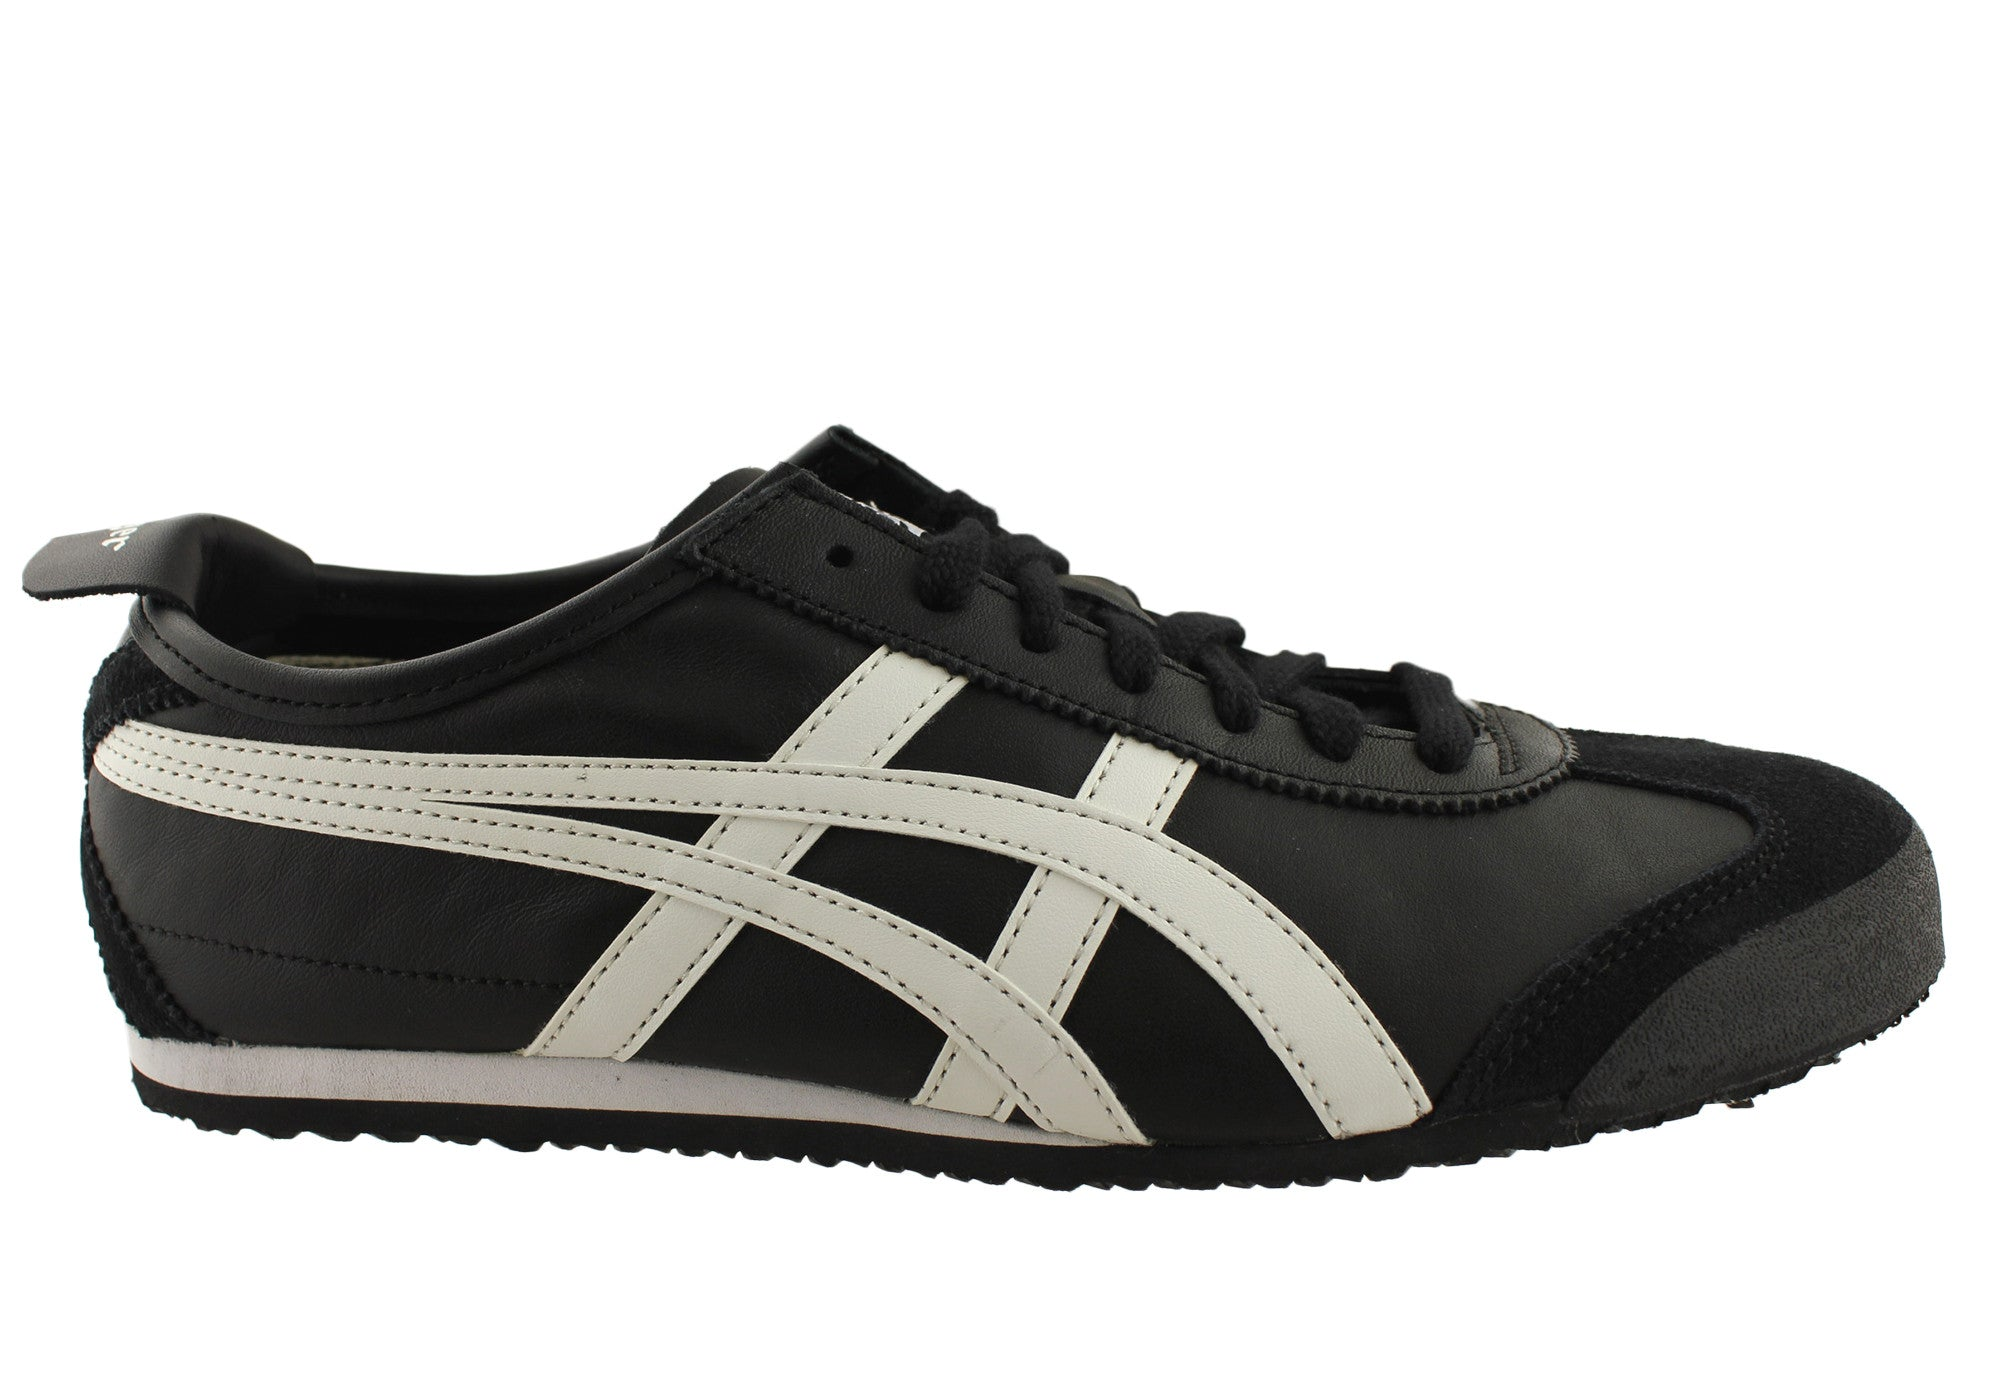 on sale 61595 a3adc Asics Onitsuka Tiger Mexico 66 Mens Leather Lace Up Casual Shoes | Brand  House Direct